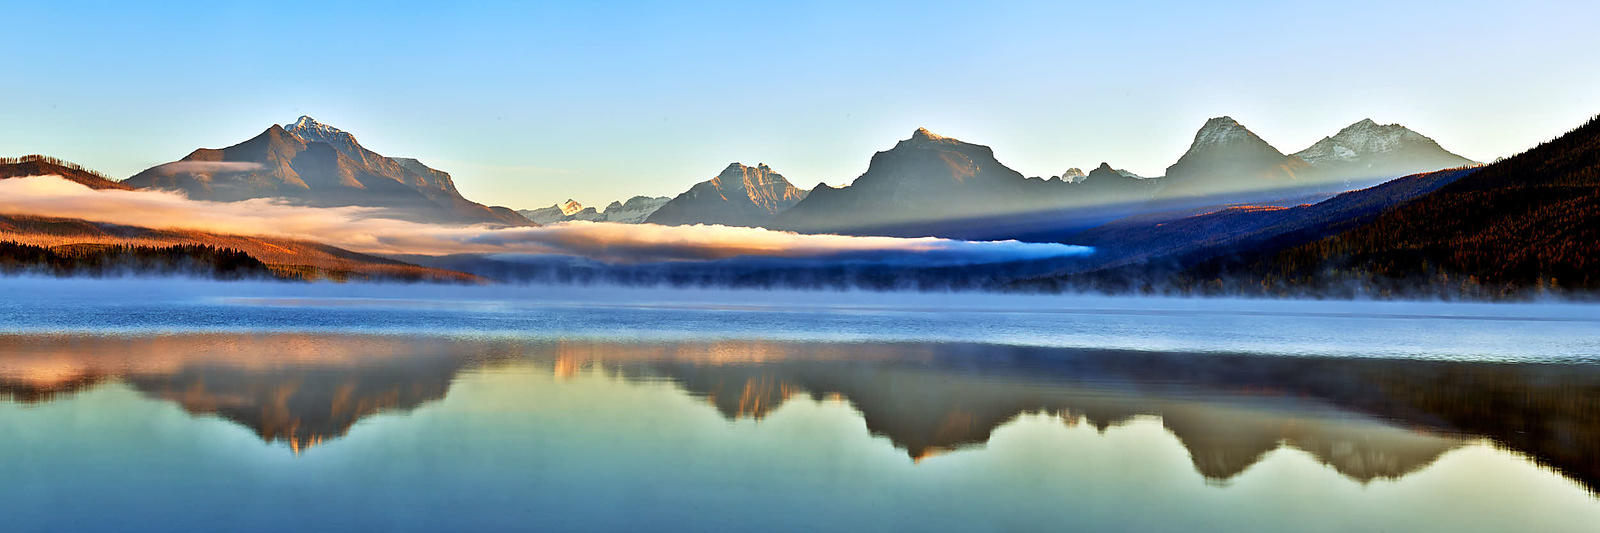 Lake McDonald Foggy Sunrise